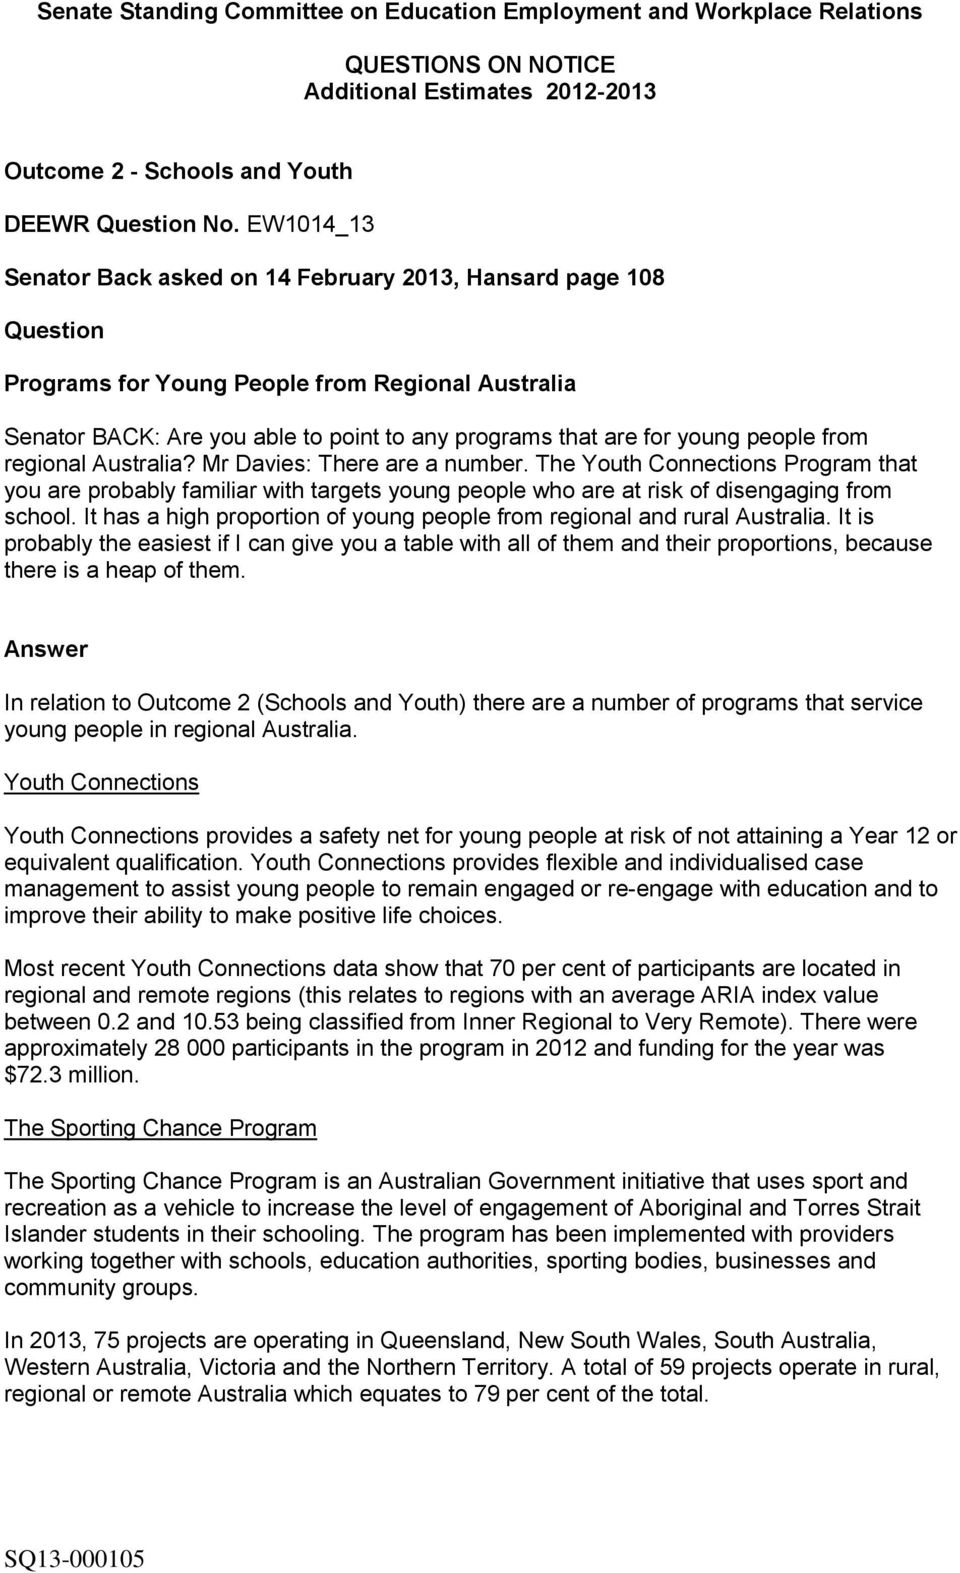 people from regional Australia? Mr Davies: There are a number. The Youth Connections Program that you are probably familiar with targets young people who are at risk of disengaging from school.